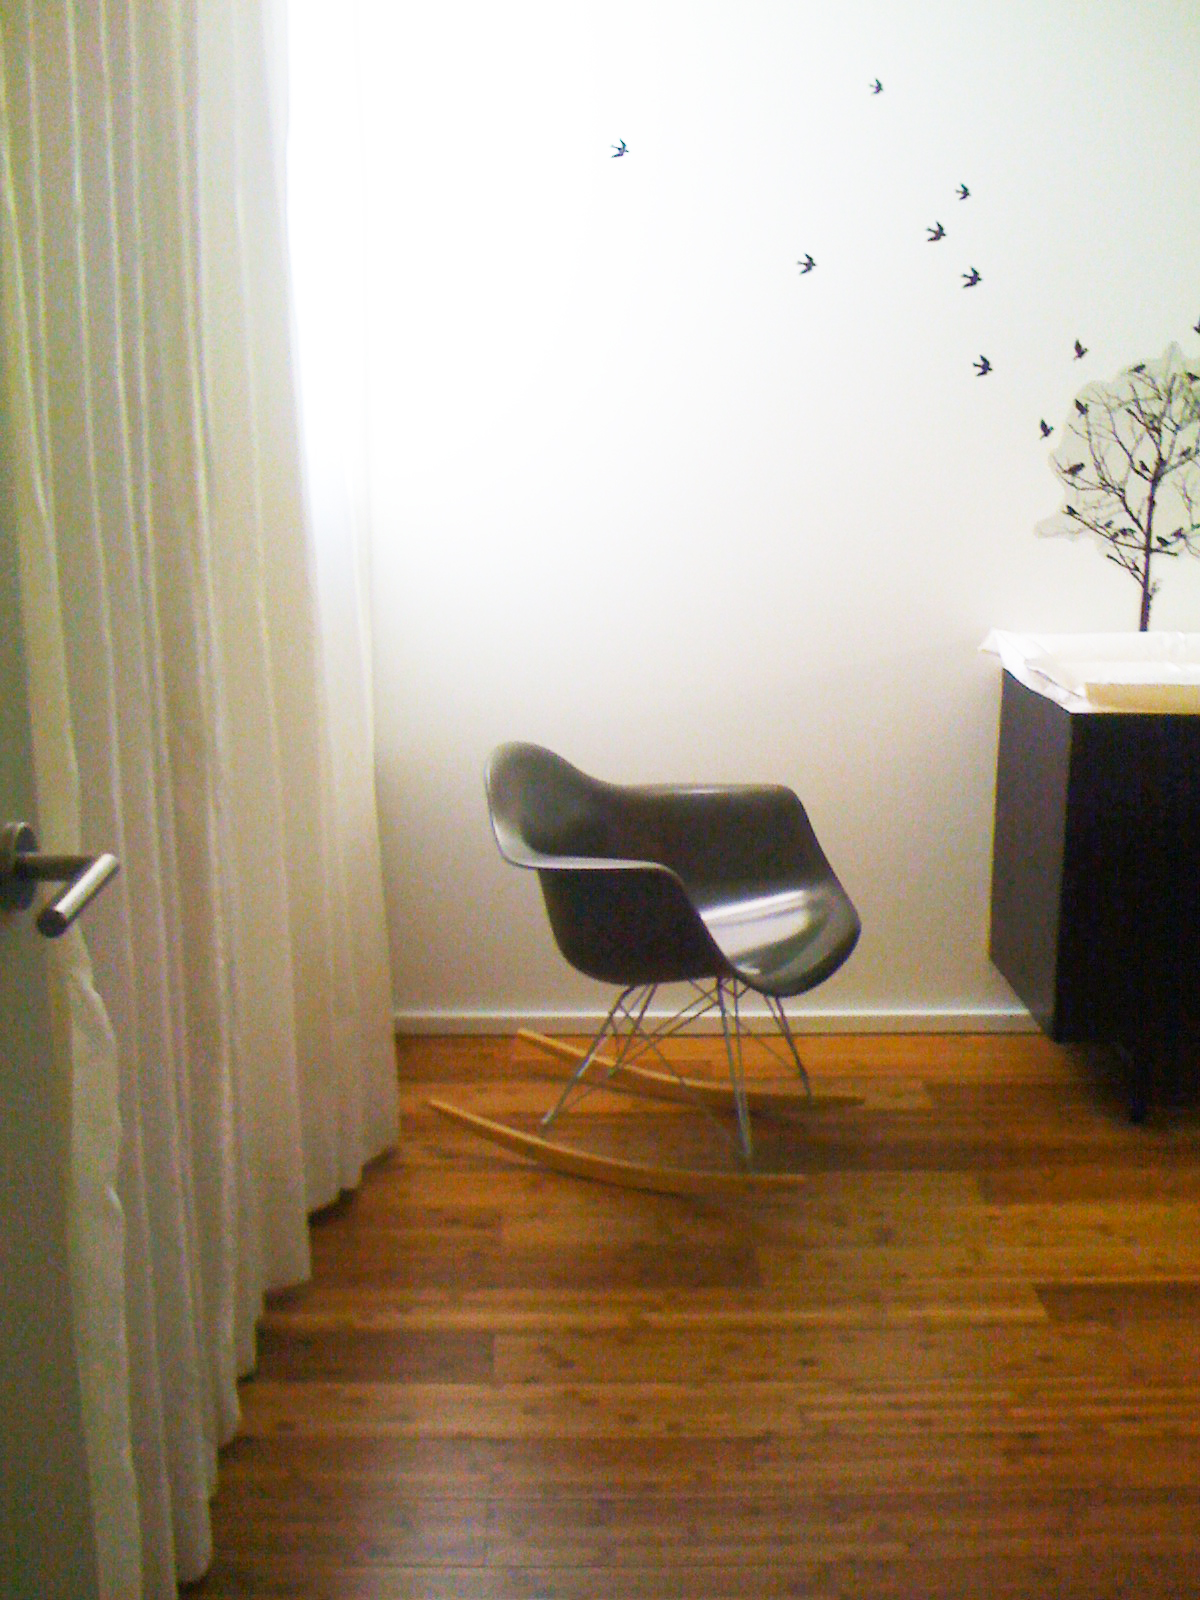 2415 BEDROOM EAMES SHELL CHAIR - OOMBRA ARCHITECTS ©